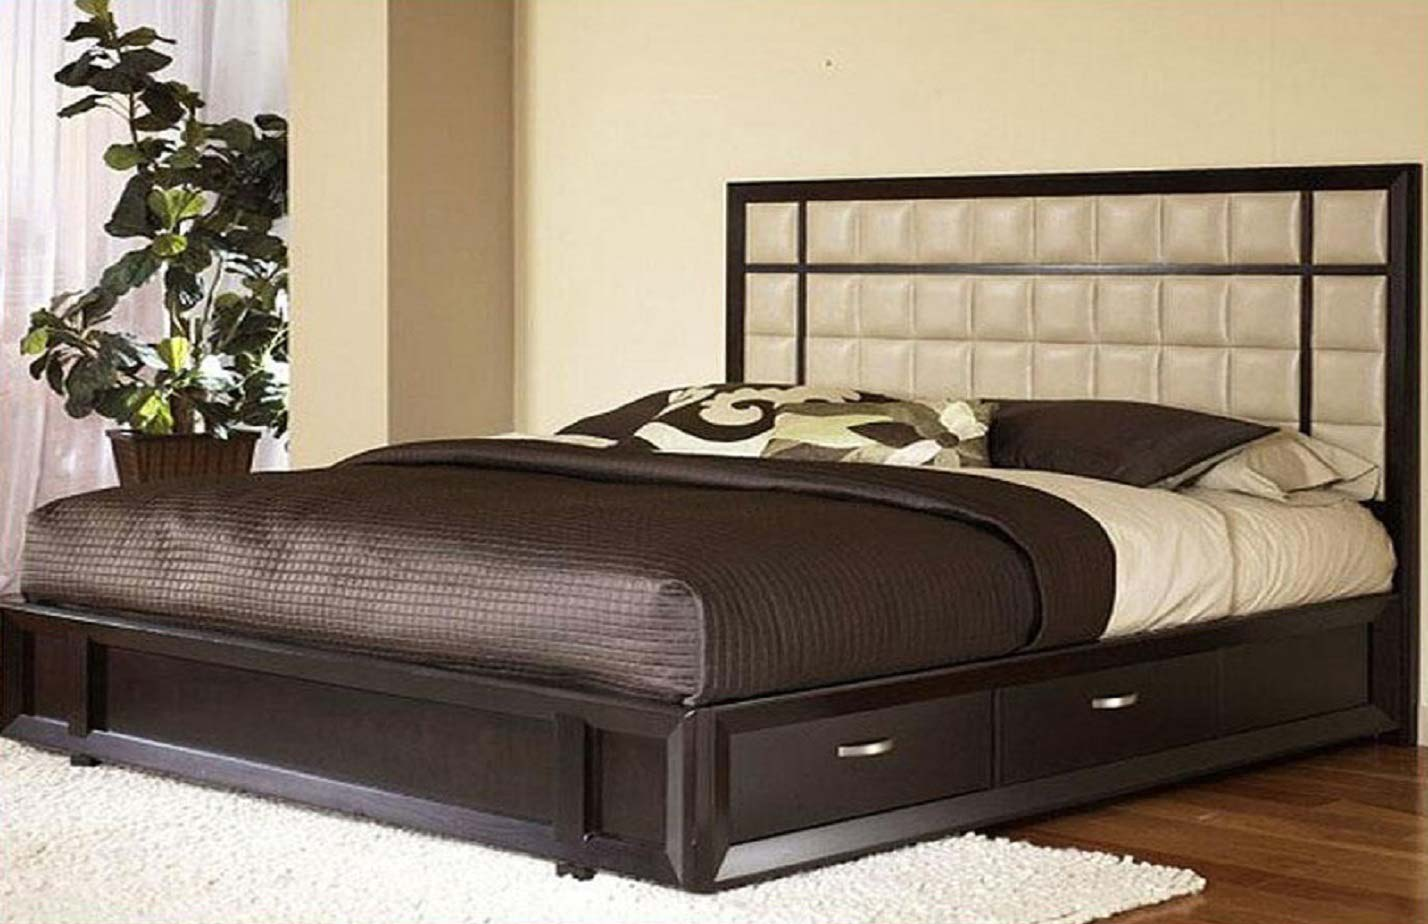 unmatched quality varied colors furniture bed design23 bed